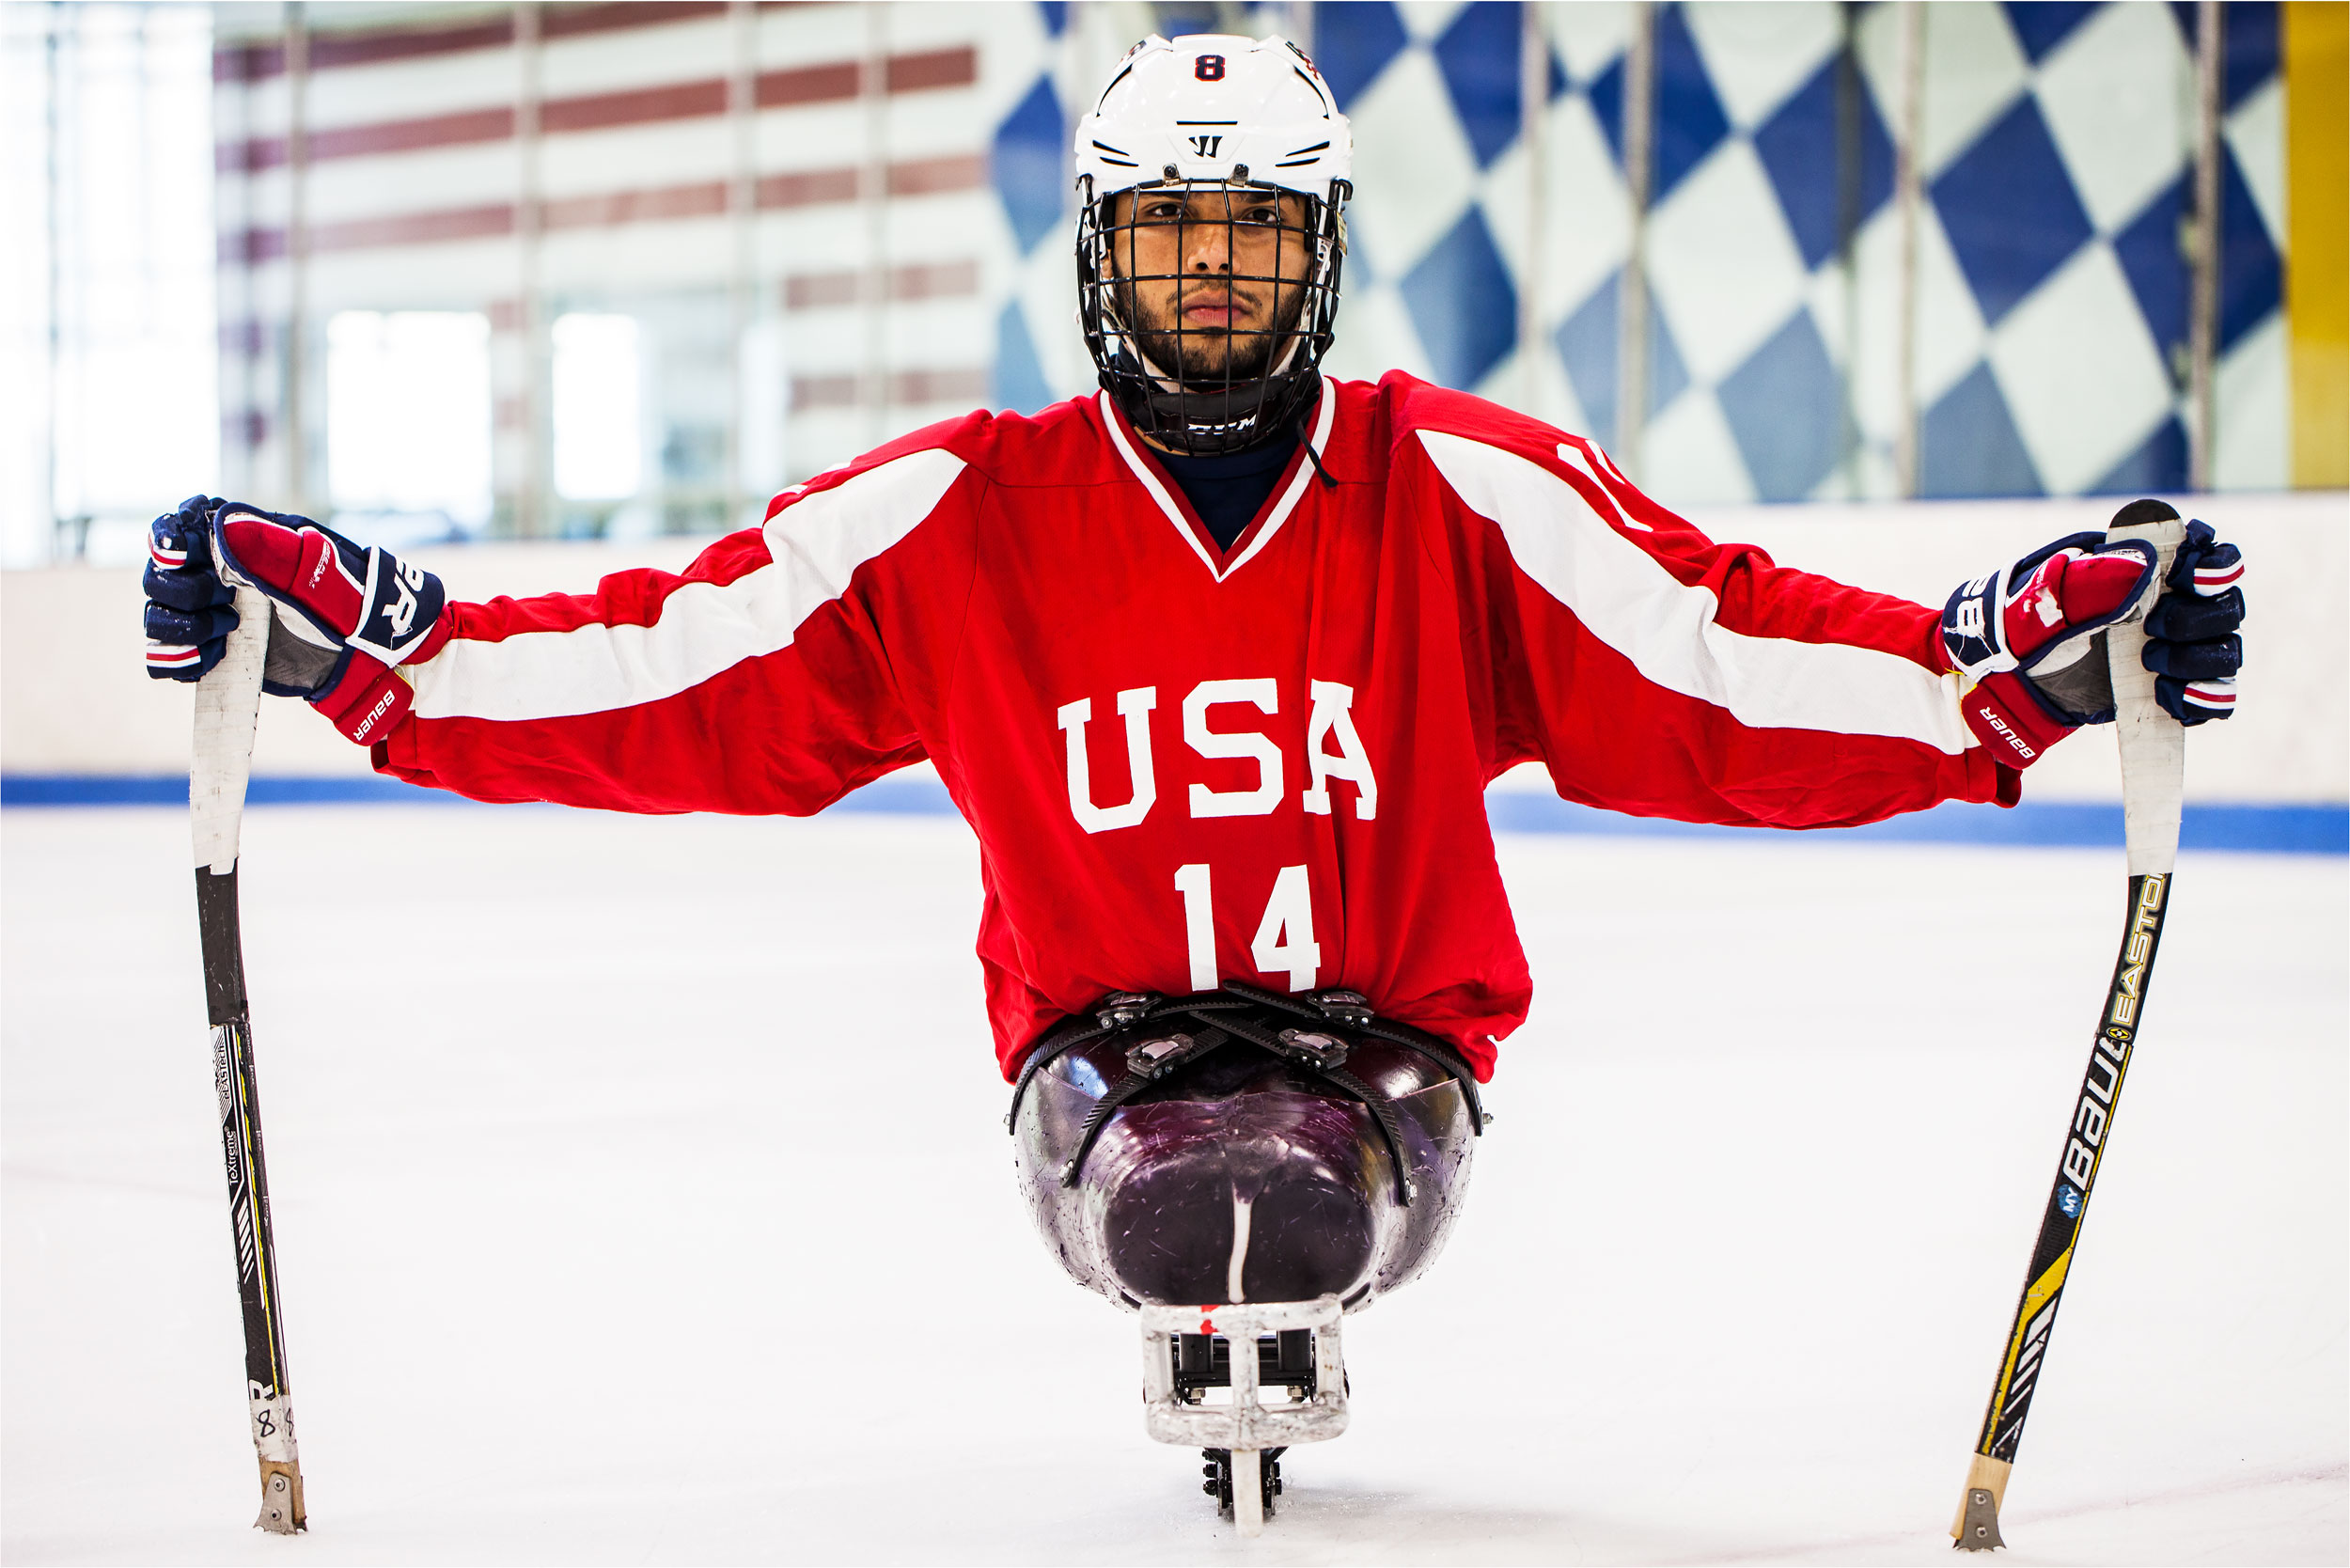 Portrait of Team USA Double-Amputee Sled-Hockey Olympic Para-Athlete Ray Diaz at Chelsea Piers, NY by Michael Weschler, photographer